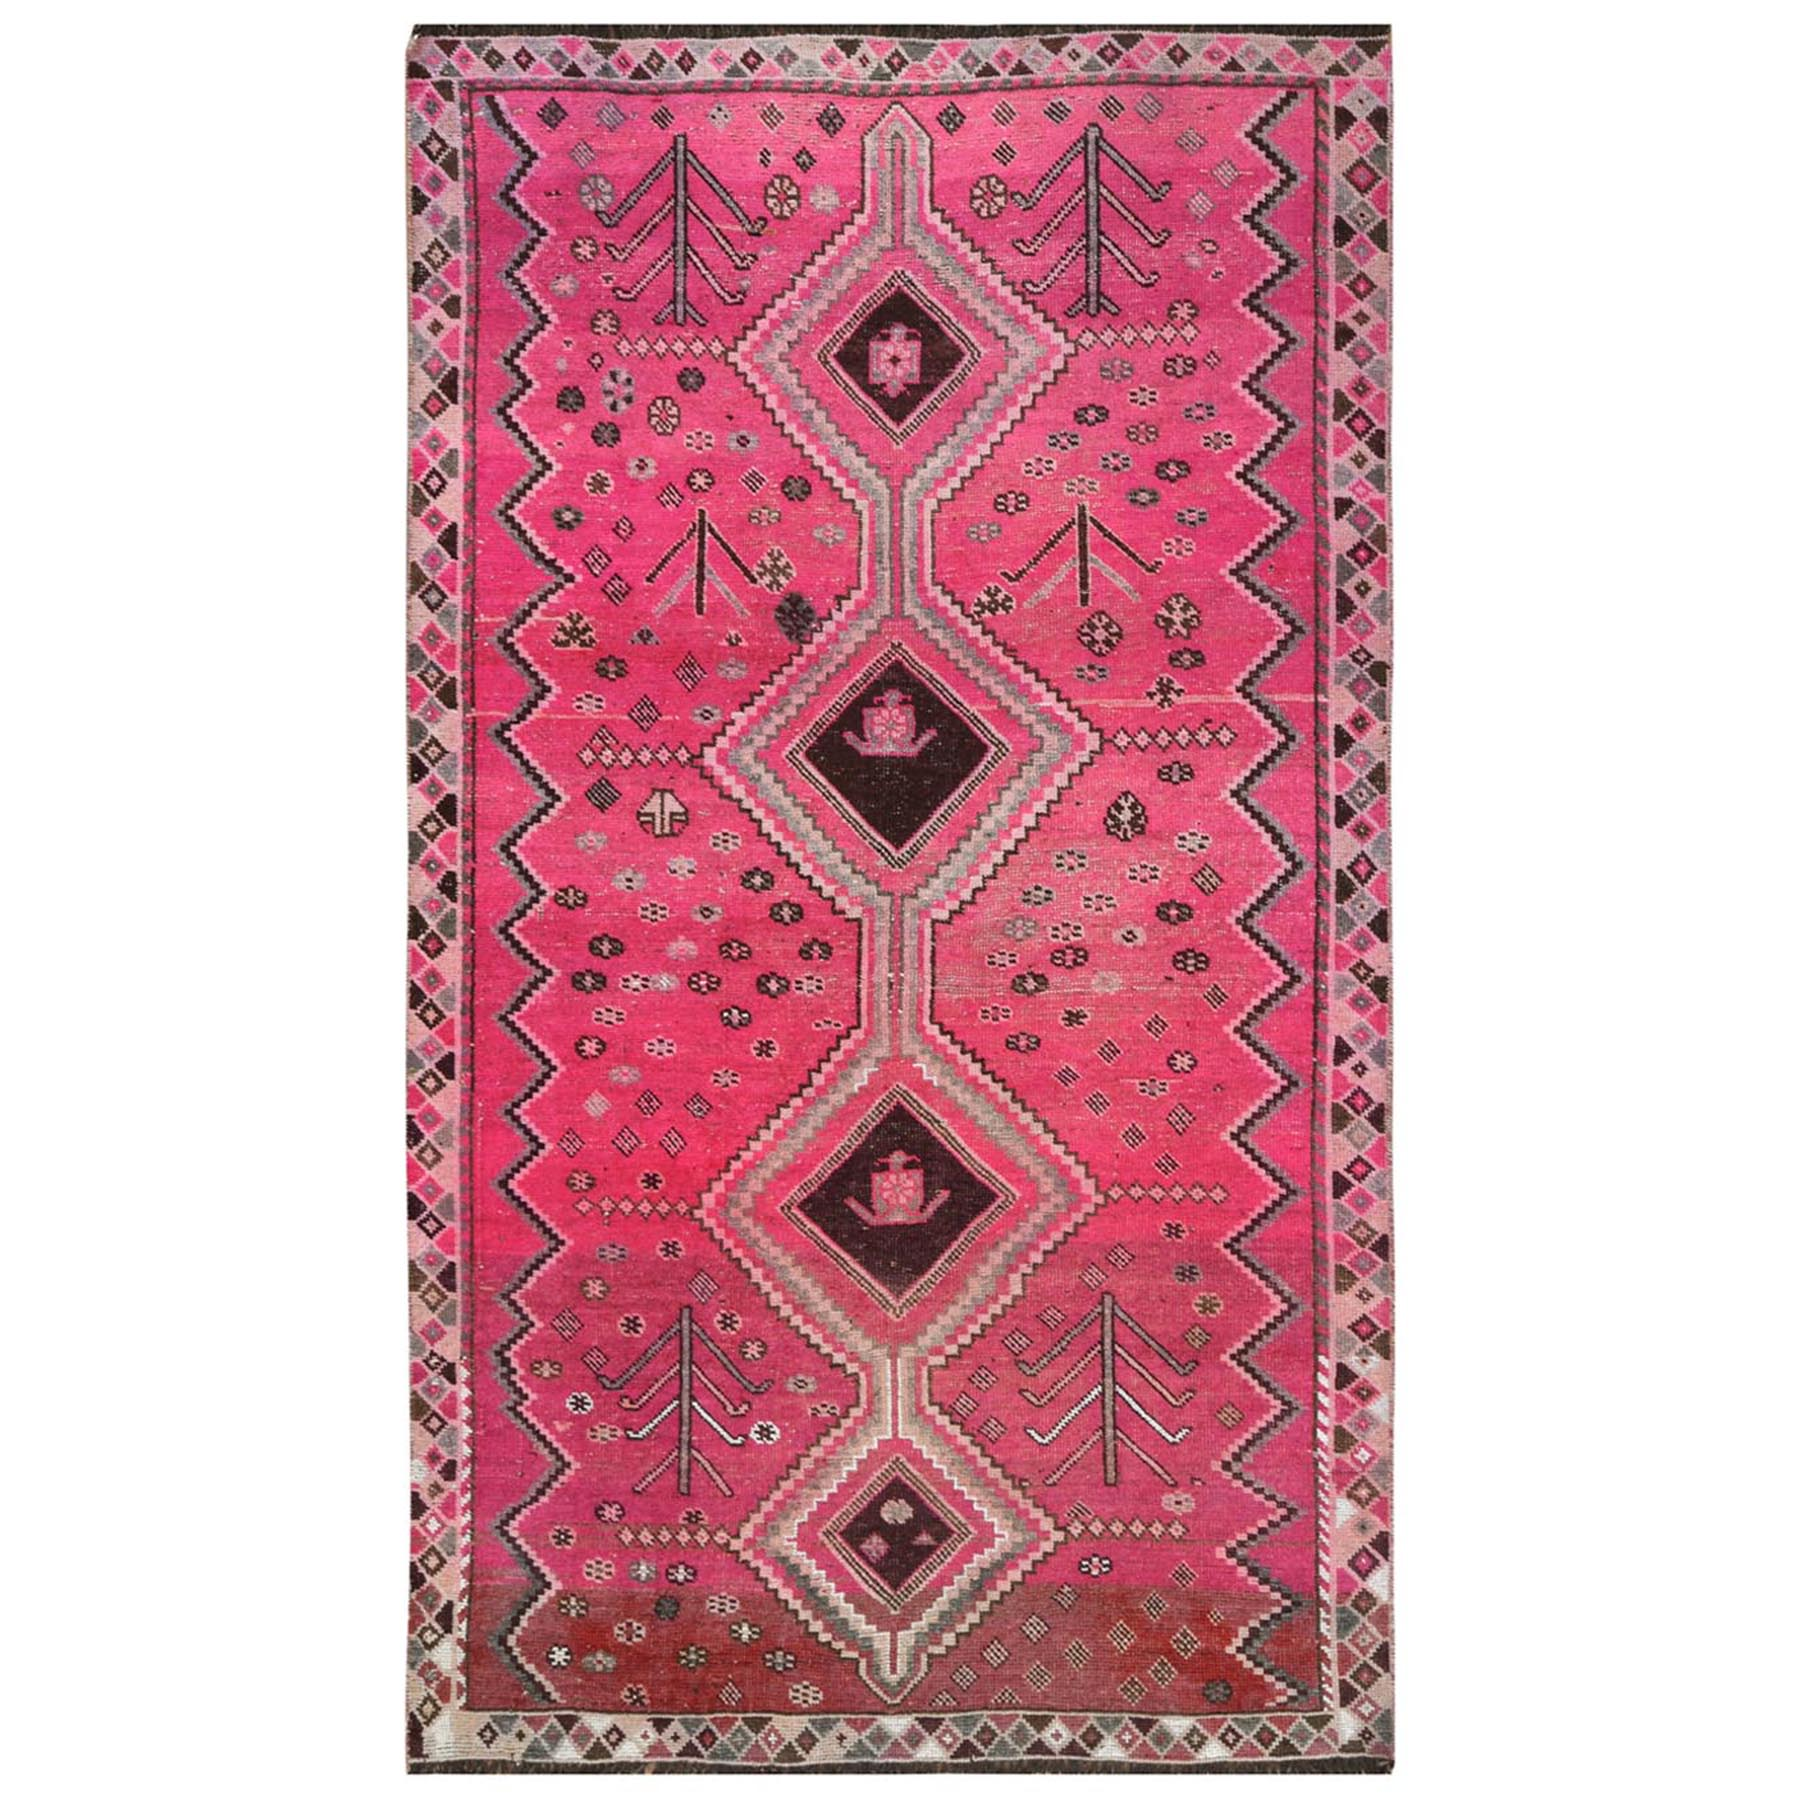 "4'5""x7'6"" Bohemian Semi Antique Pink Persian Qashqai Distressed Pure Wool Clean Hand Woven Oriental Rug"